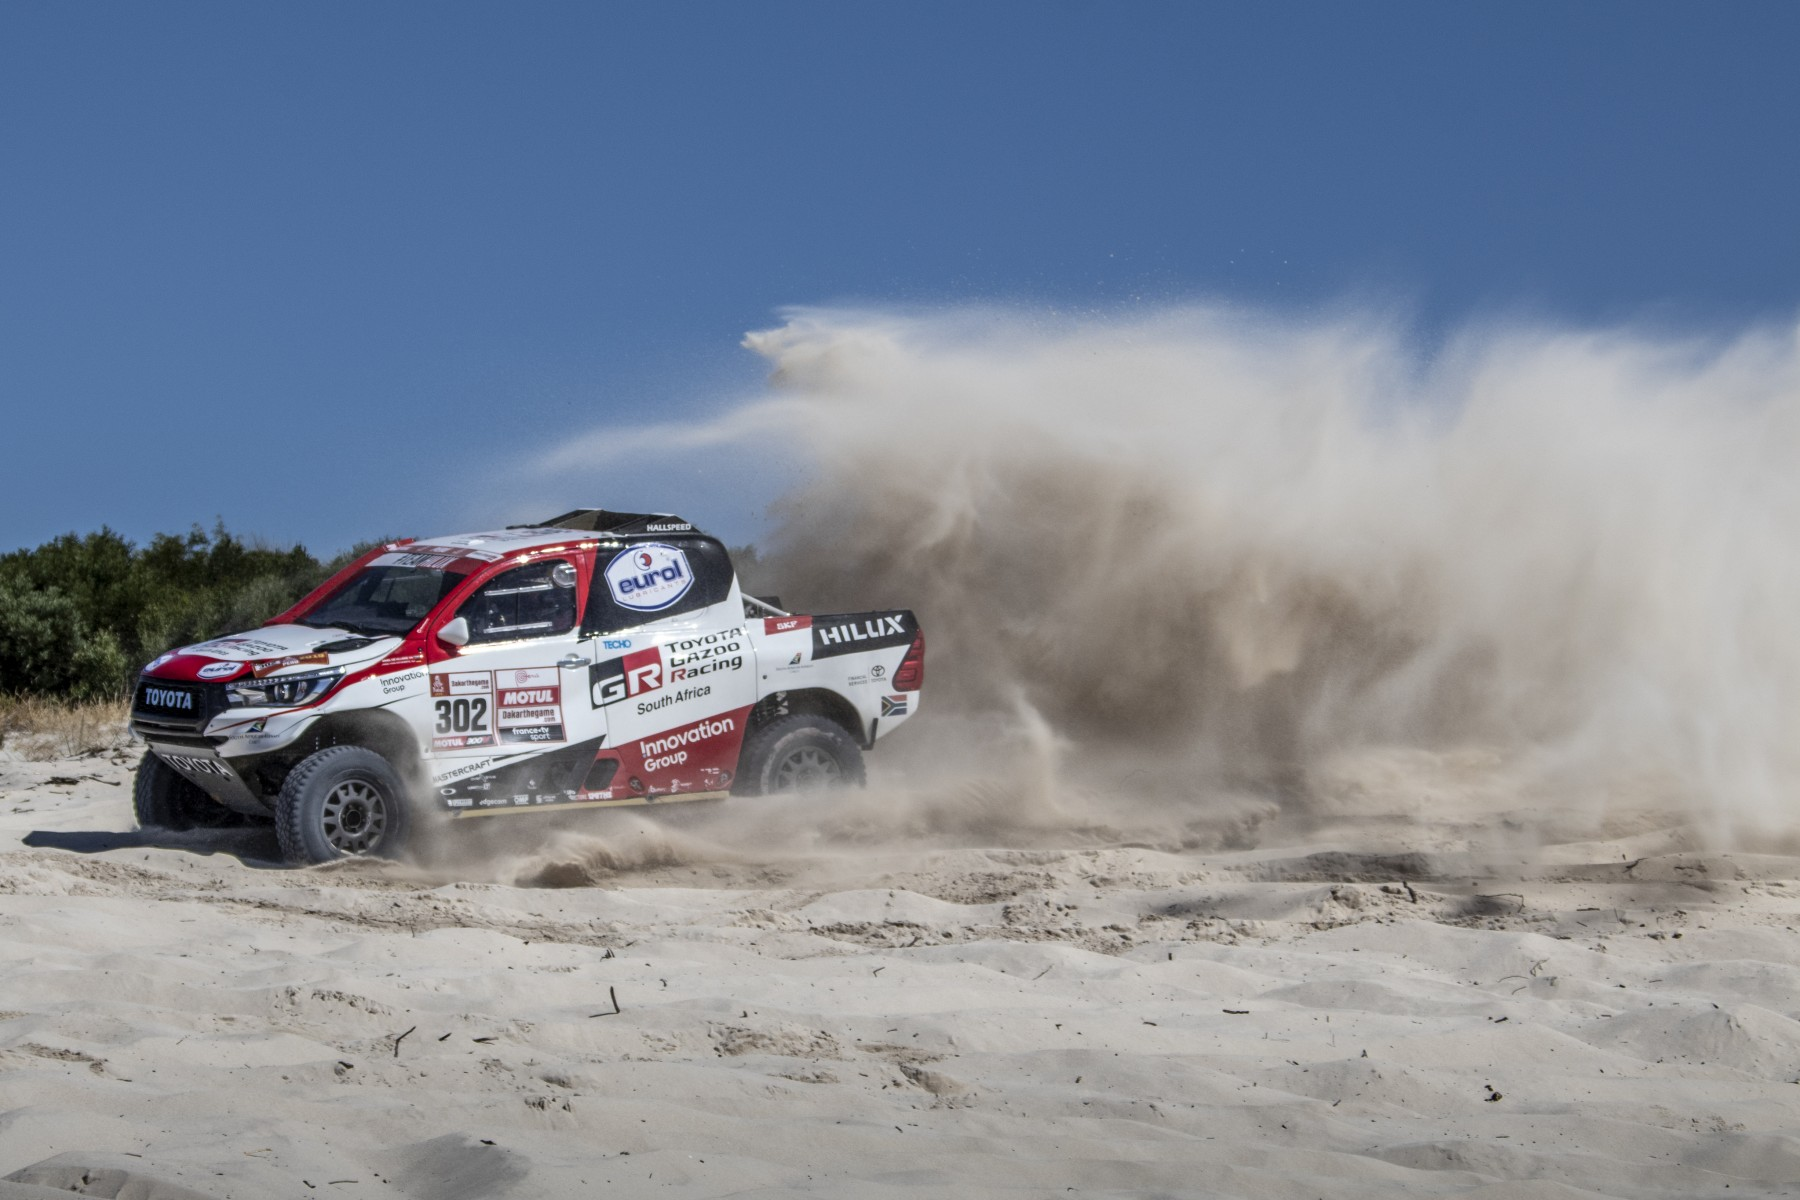 toyota gazoo racing to take on dakar 2019 with three car line up. Black Bedroom Furniture Sets. Home Design Ideas